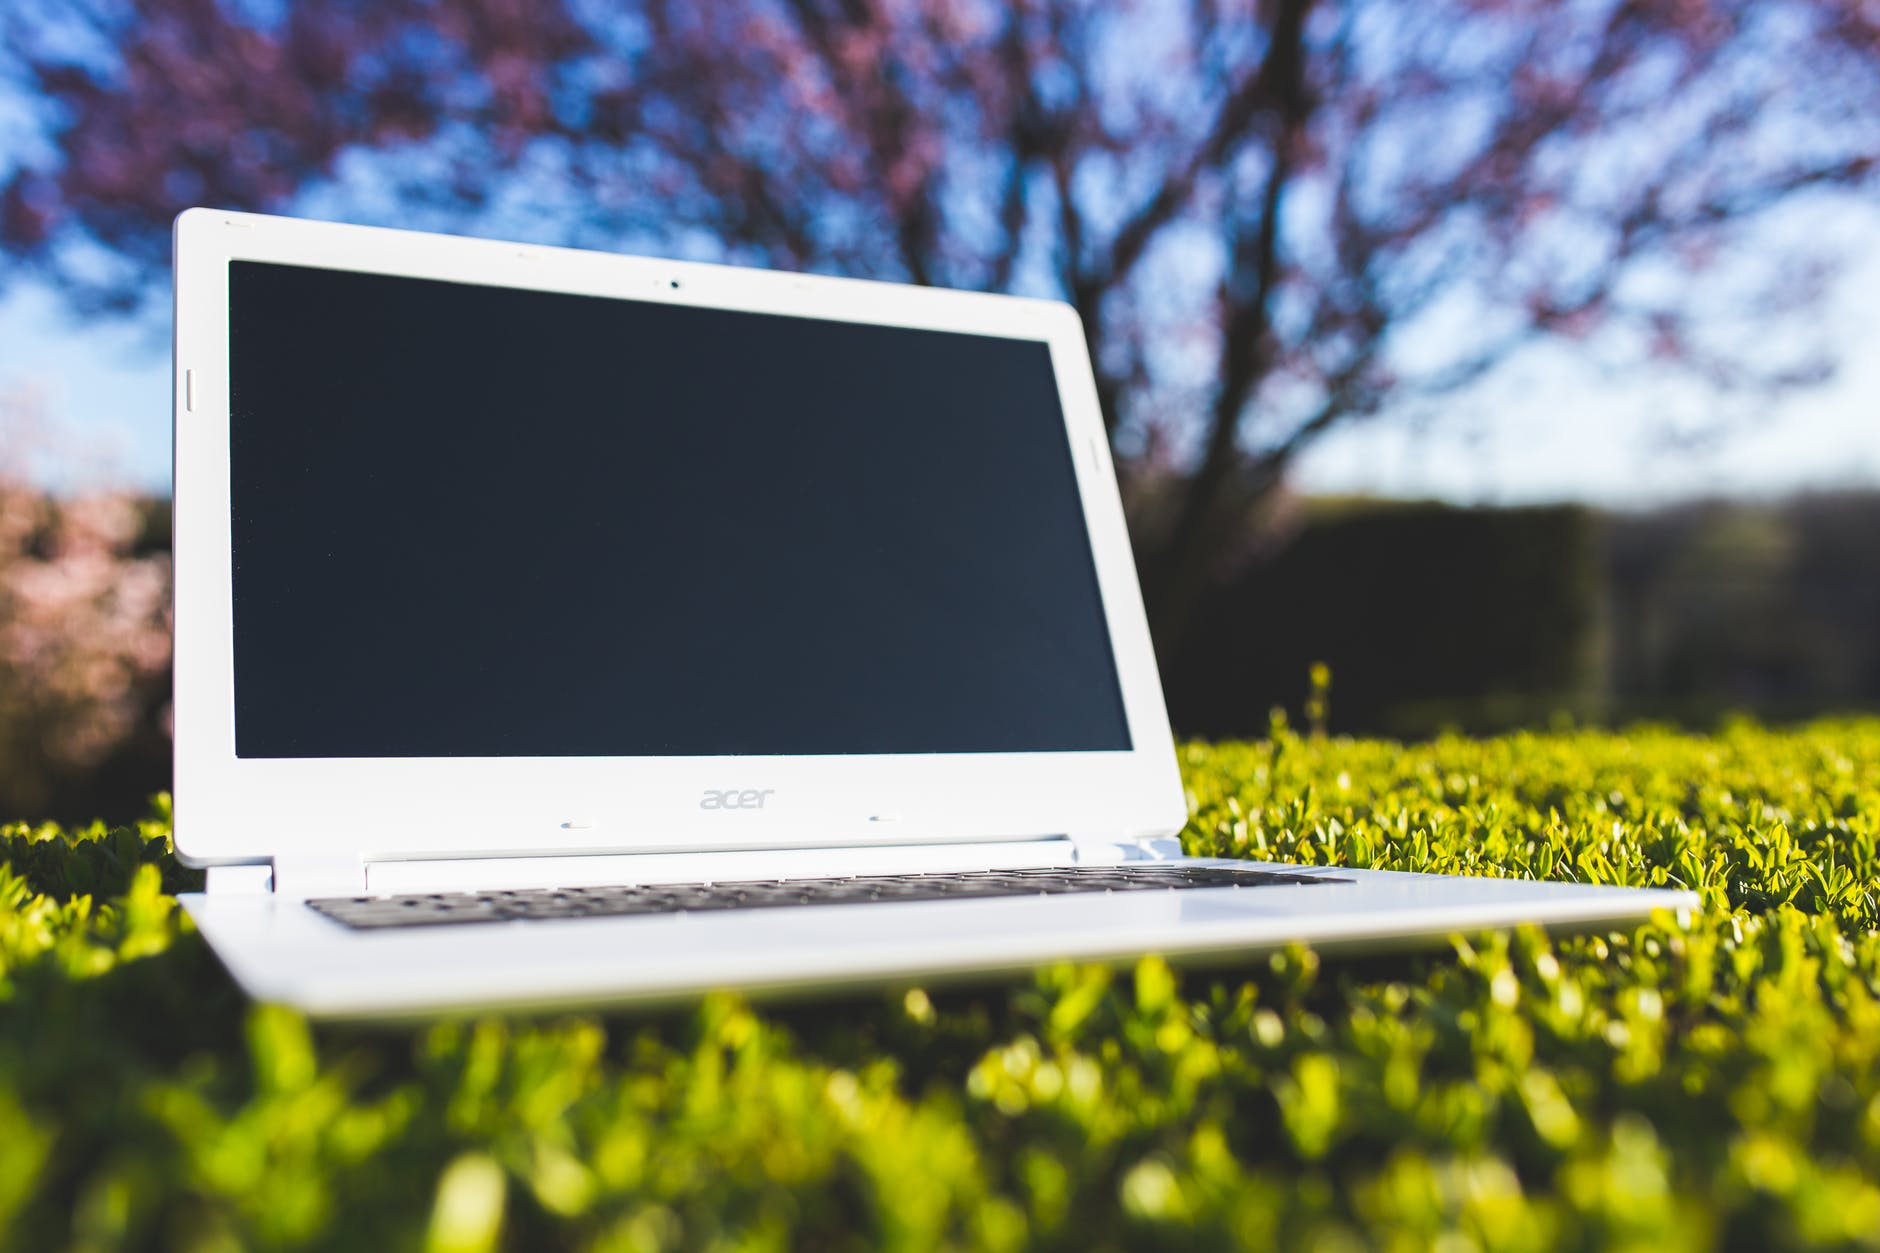 """Photo by Kaboompics .com on <a href=""""https://www.pexels.com/photo/white-laptop-on-a-green-meadow-6451/"""" rel=""""nofollow"""">Pexels.com</a>"""